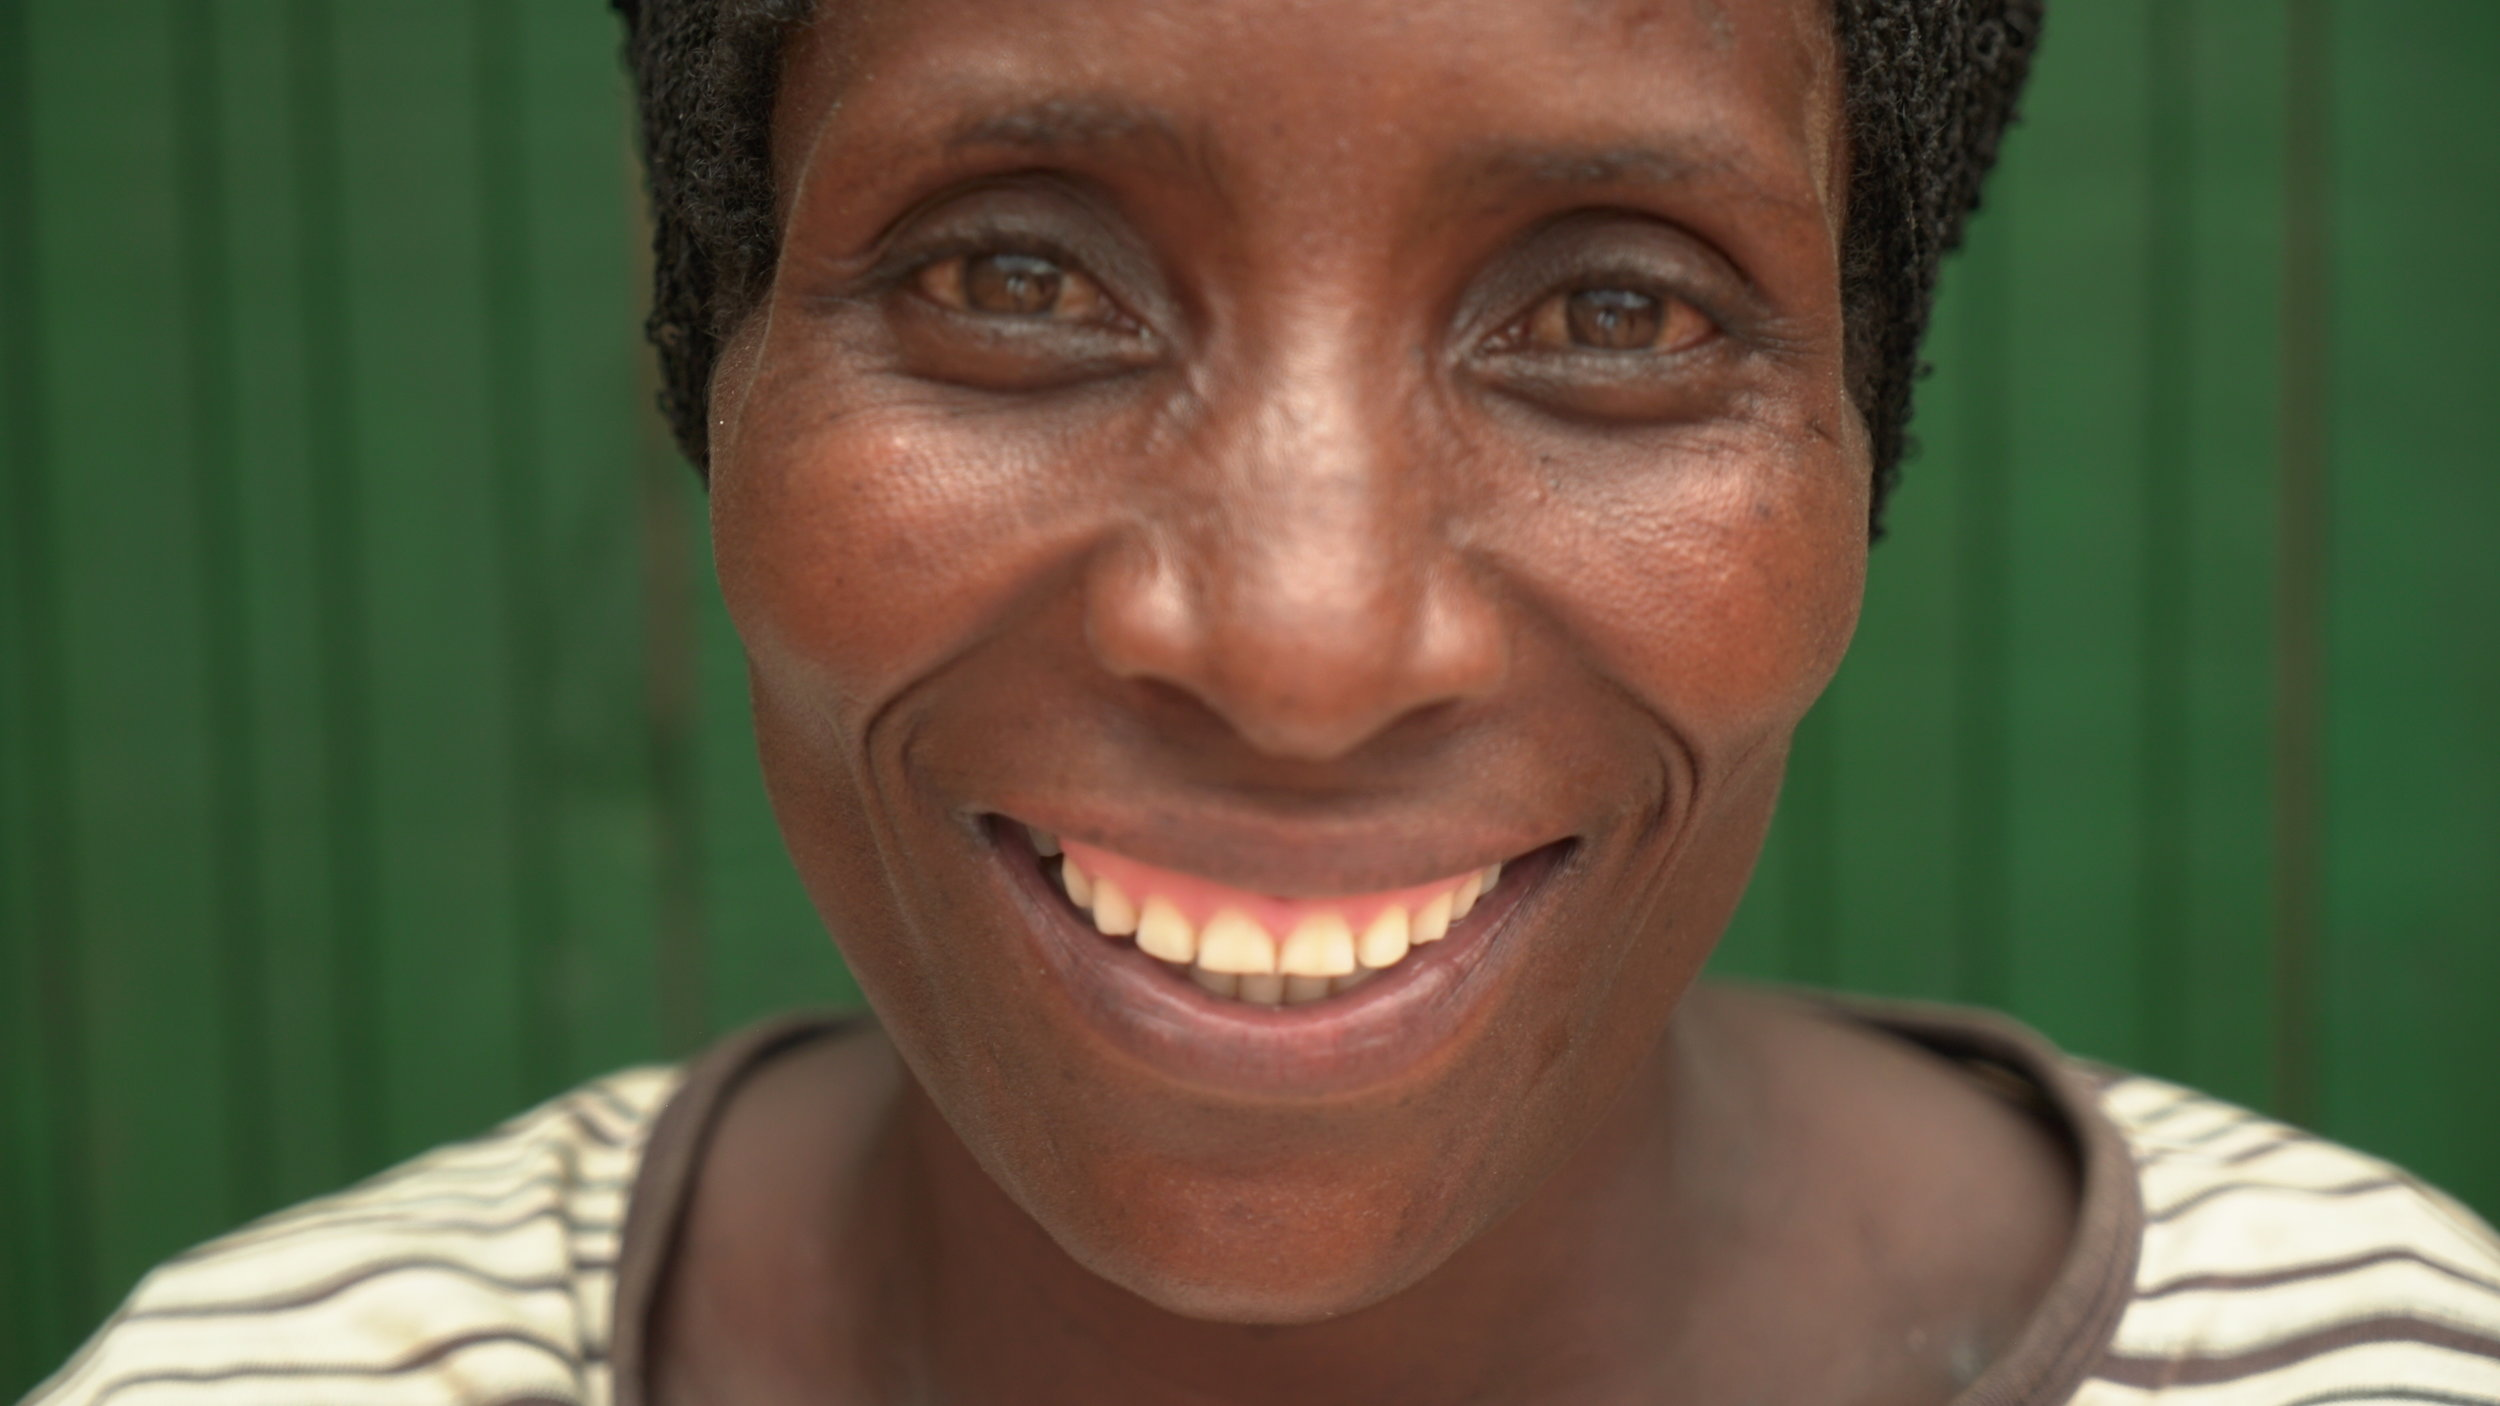 Paskazi - is 45 years old and has 3 children. With previous baking experience, she is a great asset to the team and one of the best bread kneaders. When the bakery is not in operation she makes around $7 per month.